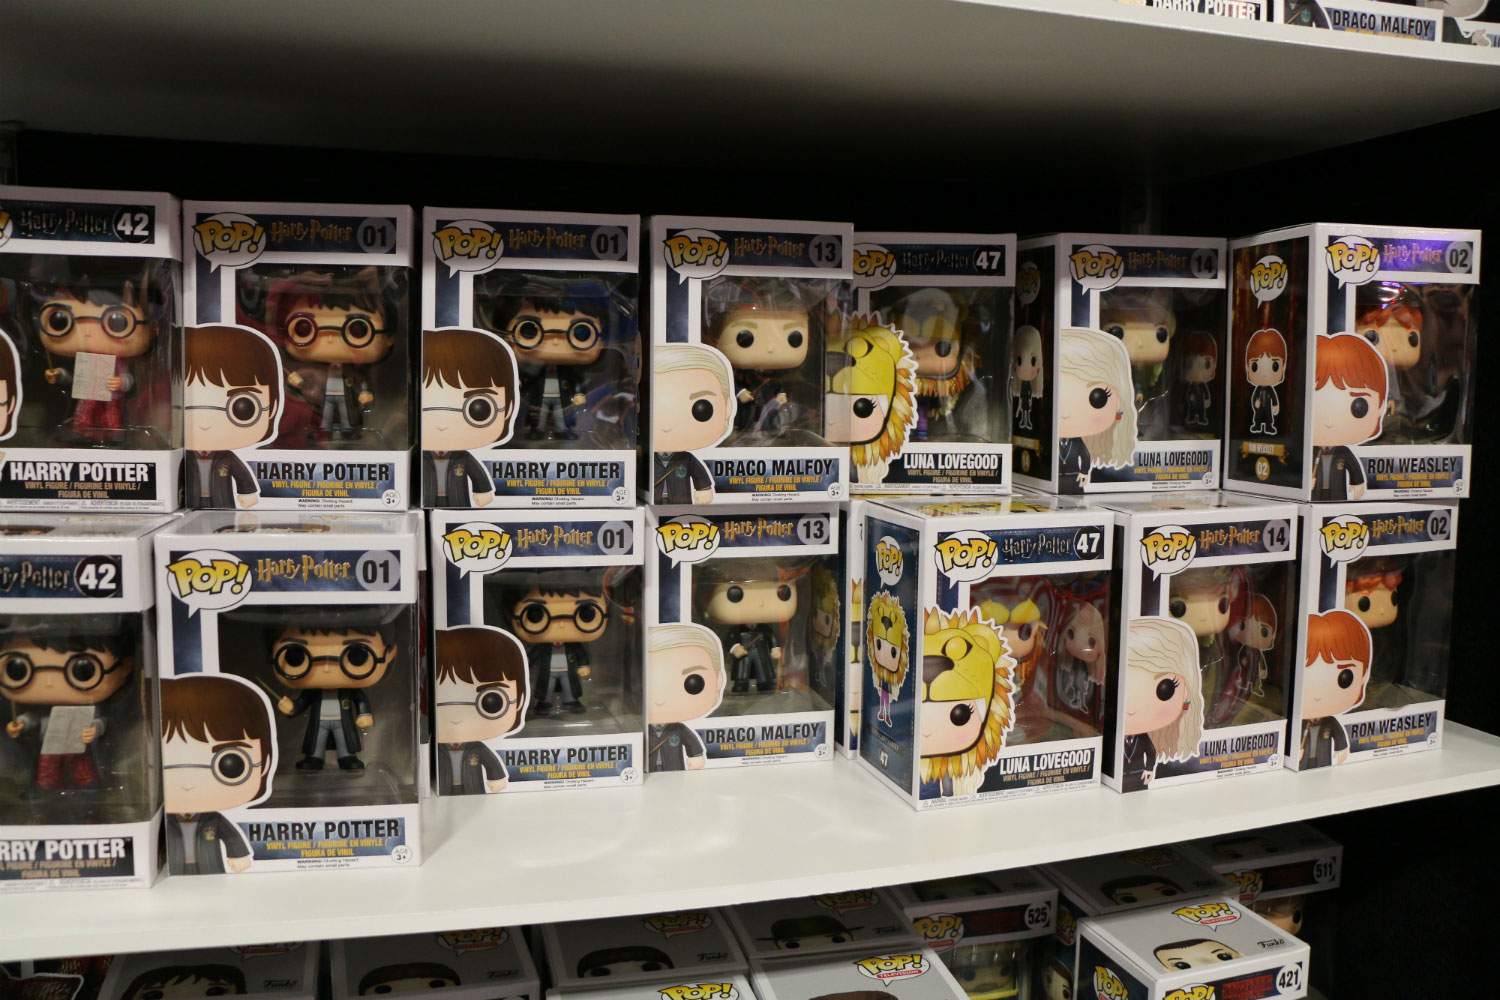 Armageddon Expo 2017 – Auckland – Harry Potter Merchandise – 3 (Photo credit: Tracey Wong)